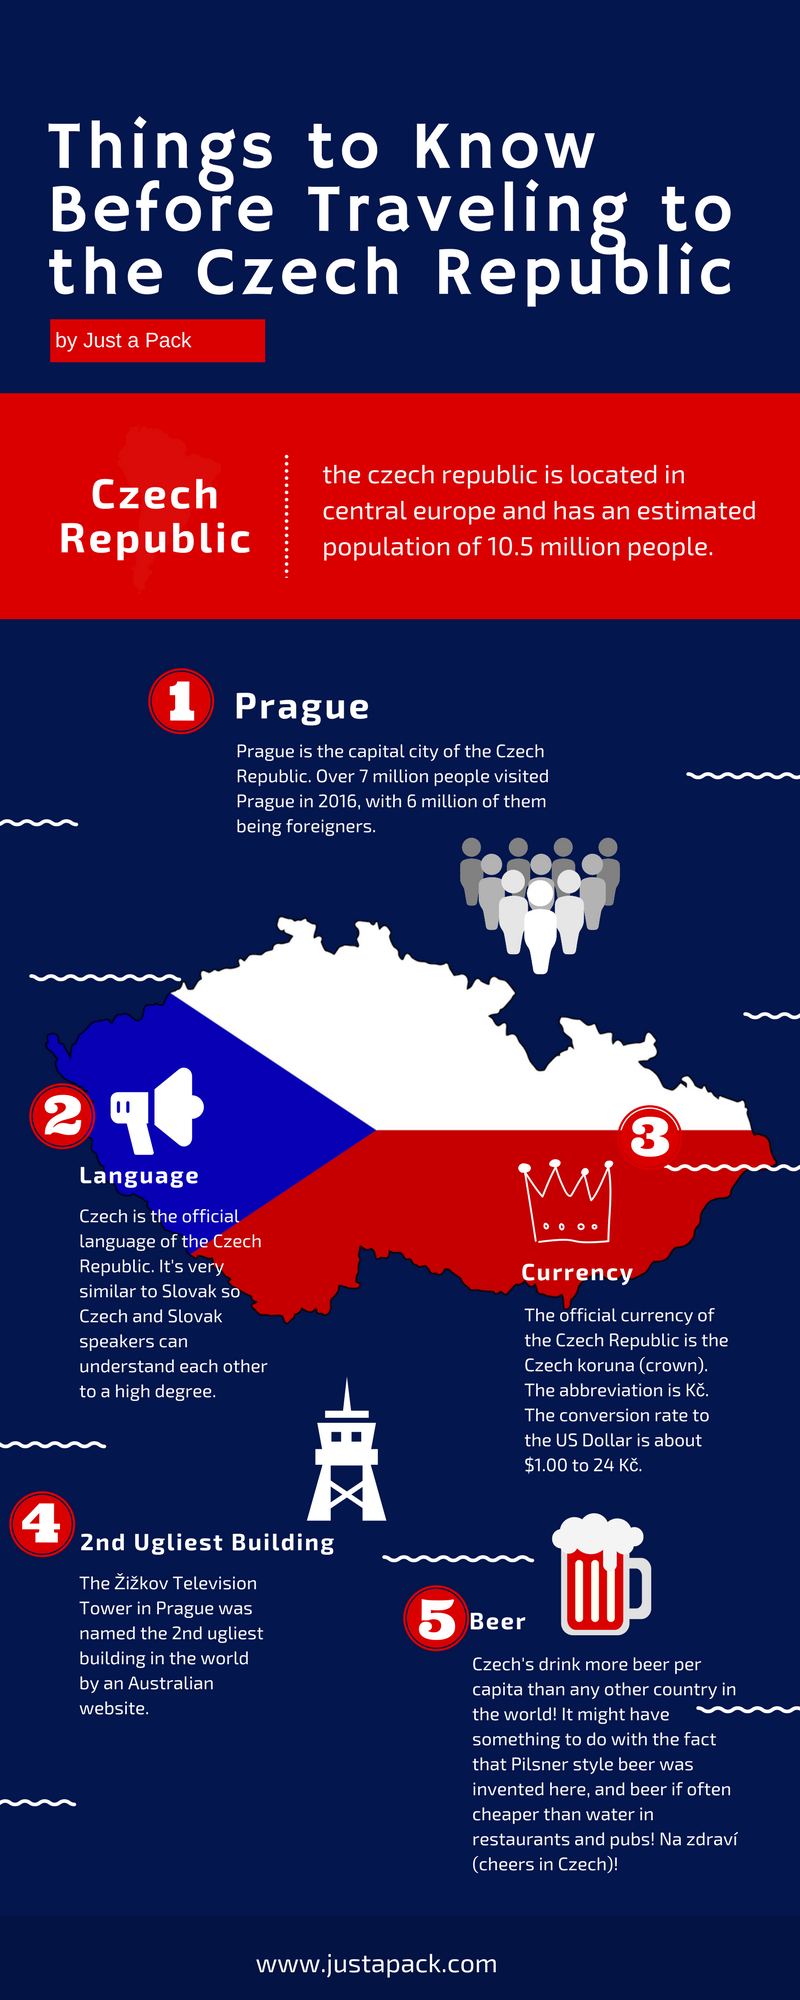 Czech Republic Infographic: A few basics to know before traveling to the Czech Republic. Click to see 19 articles about traveling to the Czech Republic and Prague. From Budget tips, to day trips from Prague, to off the beaten path things to do.